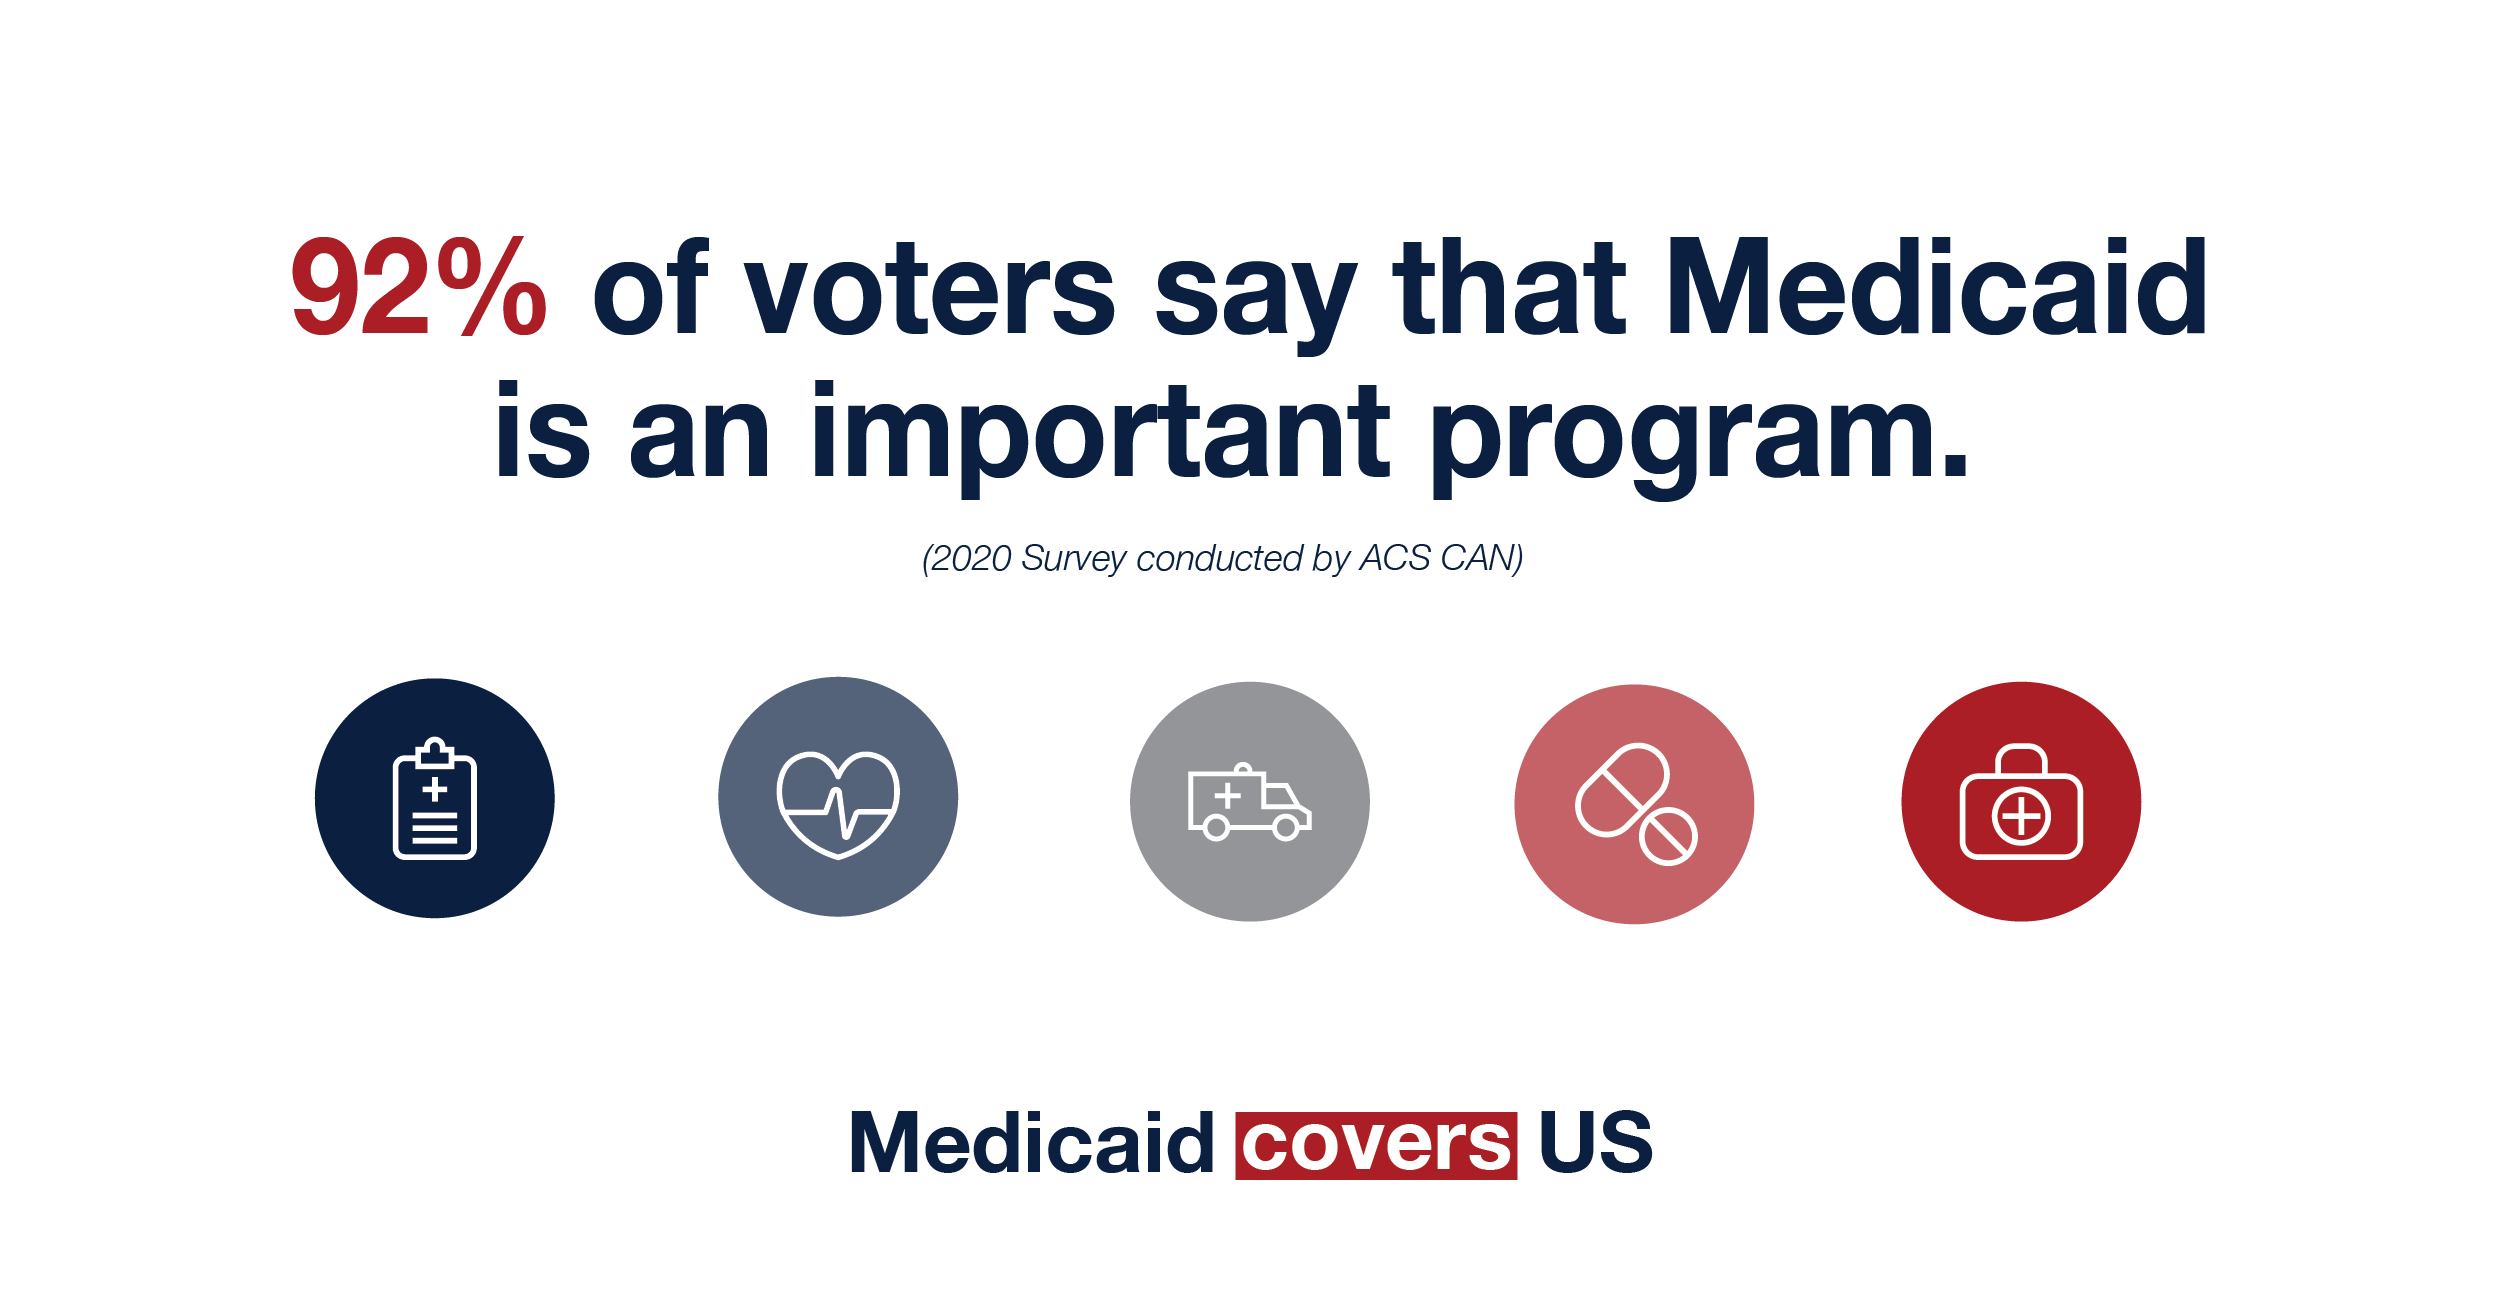 92% of voters say that Medicaid is an important program.